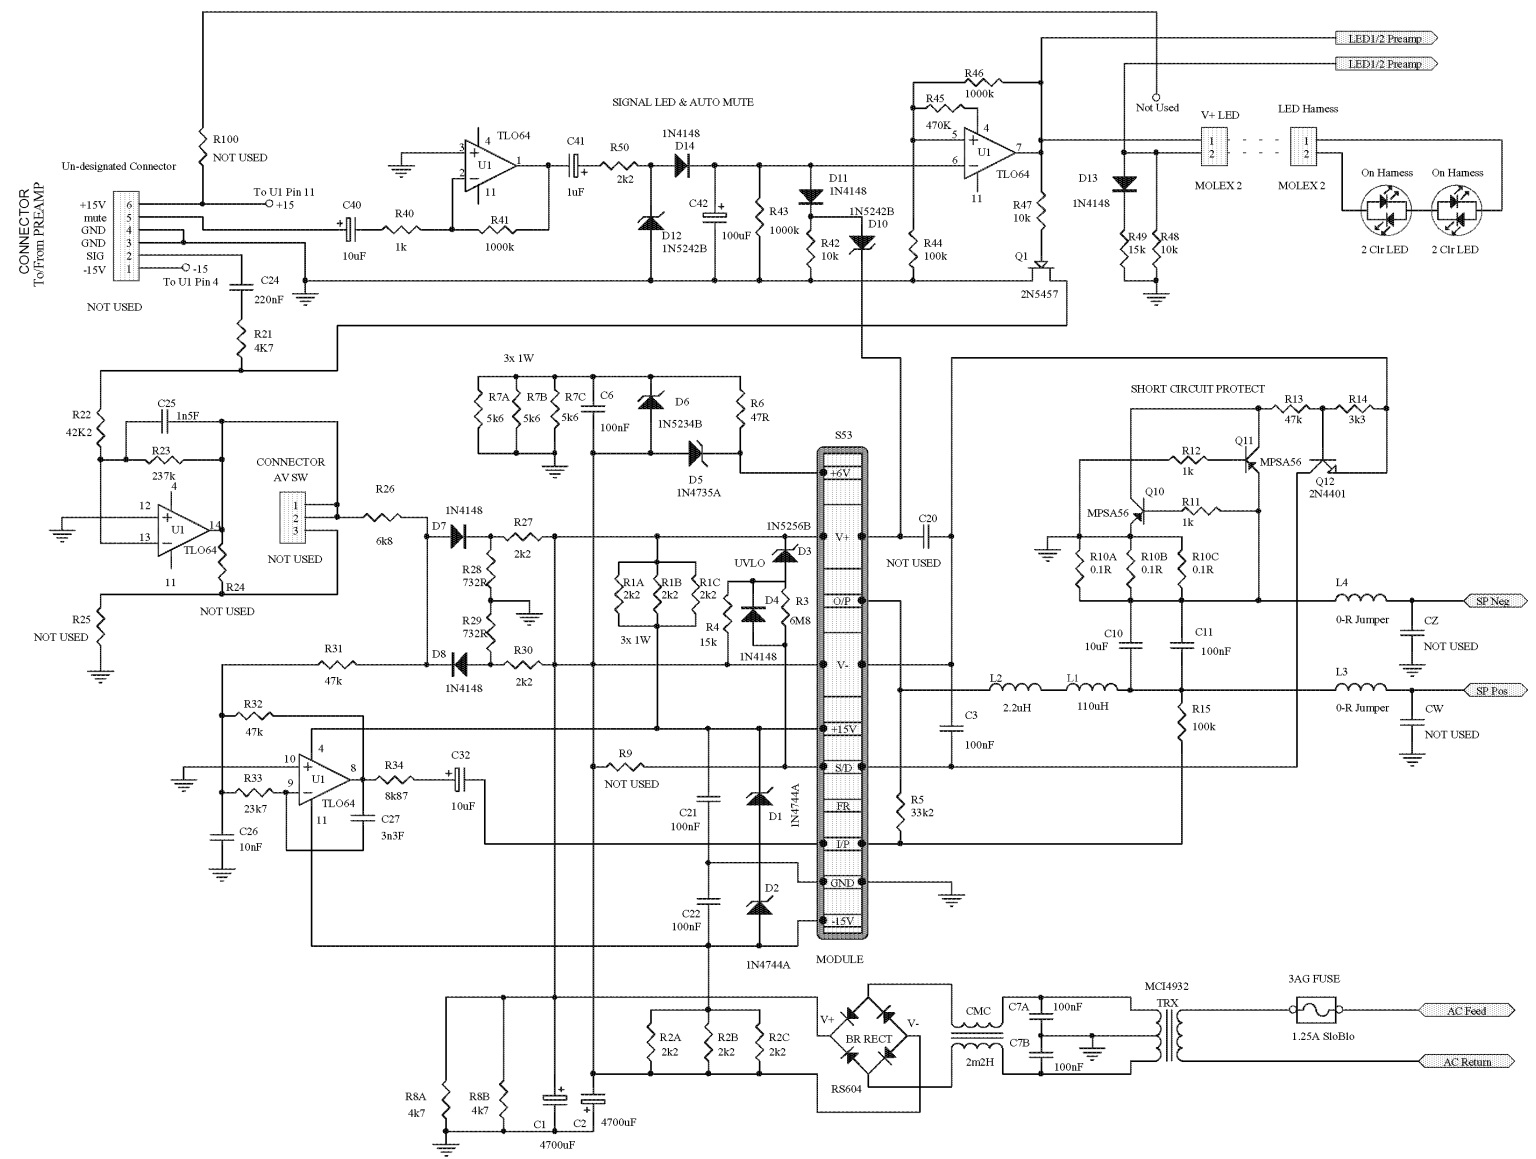 jbl pb subwoofer circuit diagram power bass series electro help circuit diagram schematic if you used the high level speaker inputs and there is no sound from any of the speakers